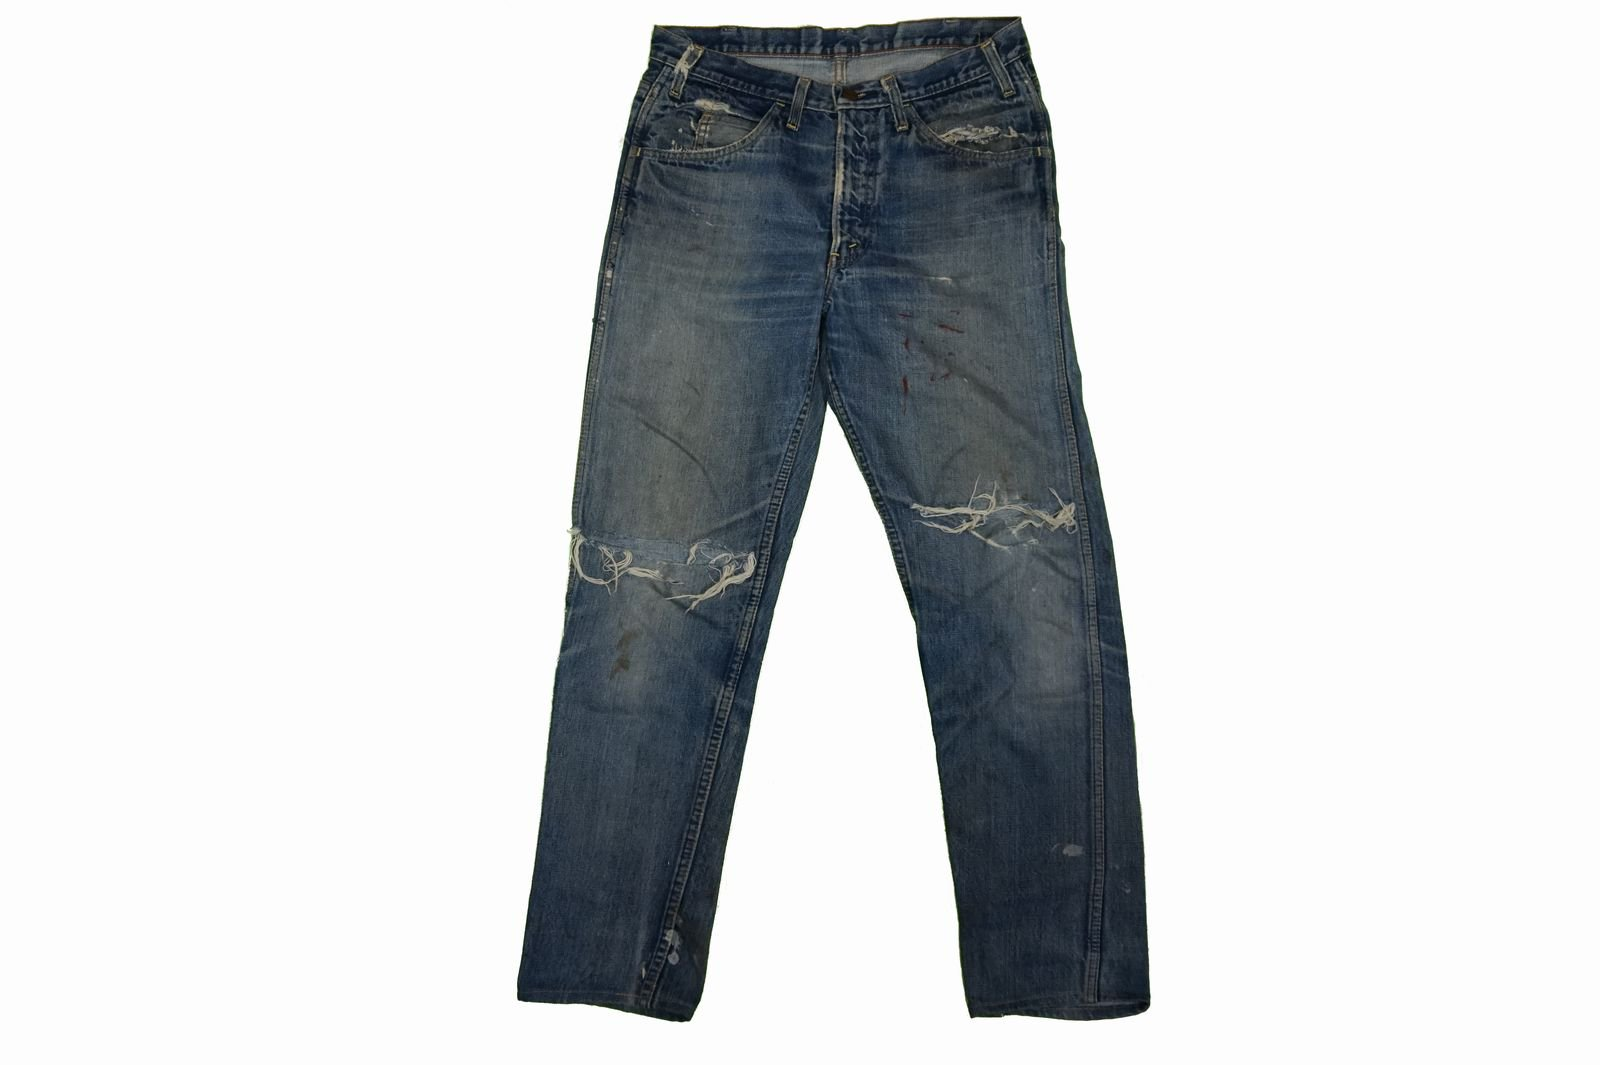 60年代 LEVI'S 606 BIGE CRASH